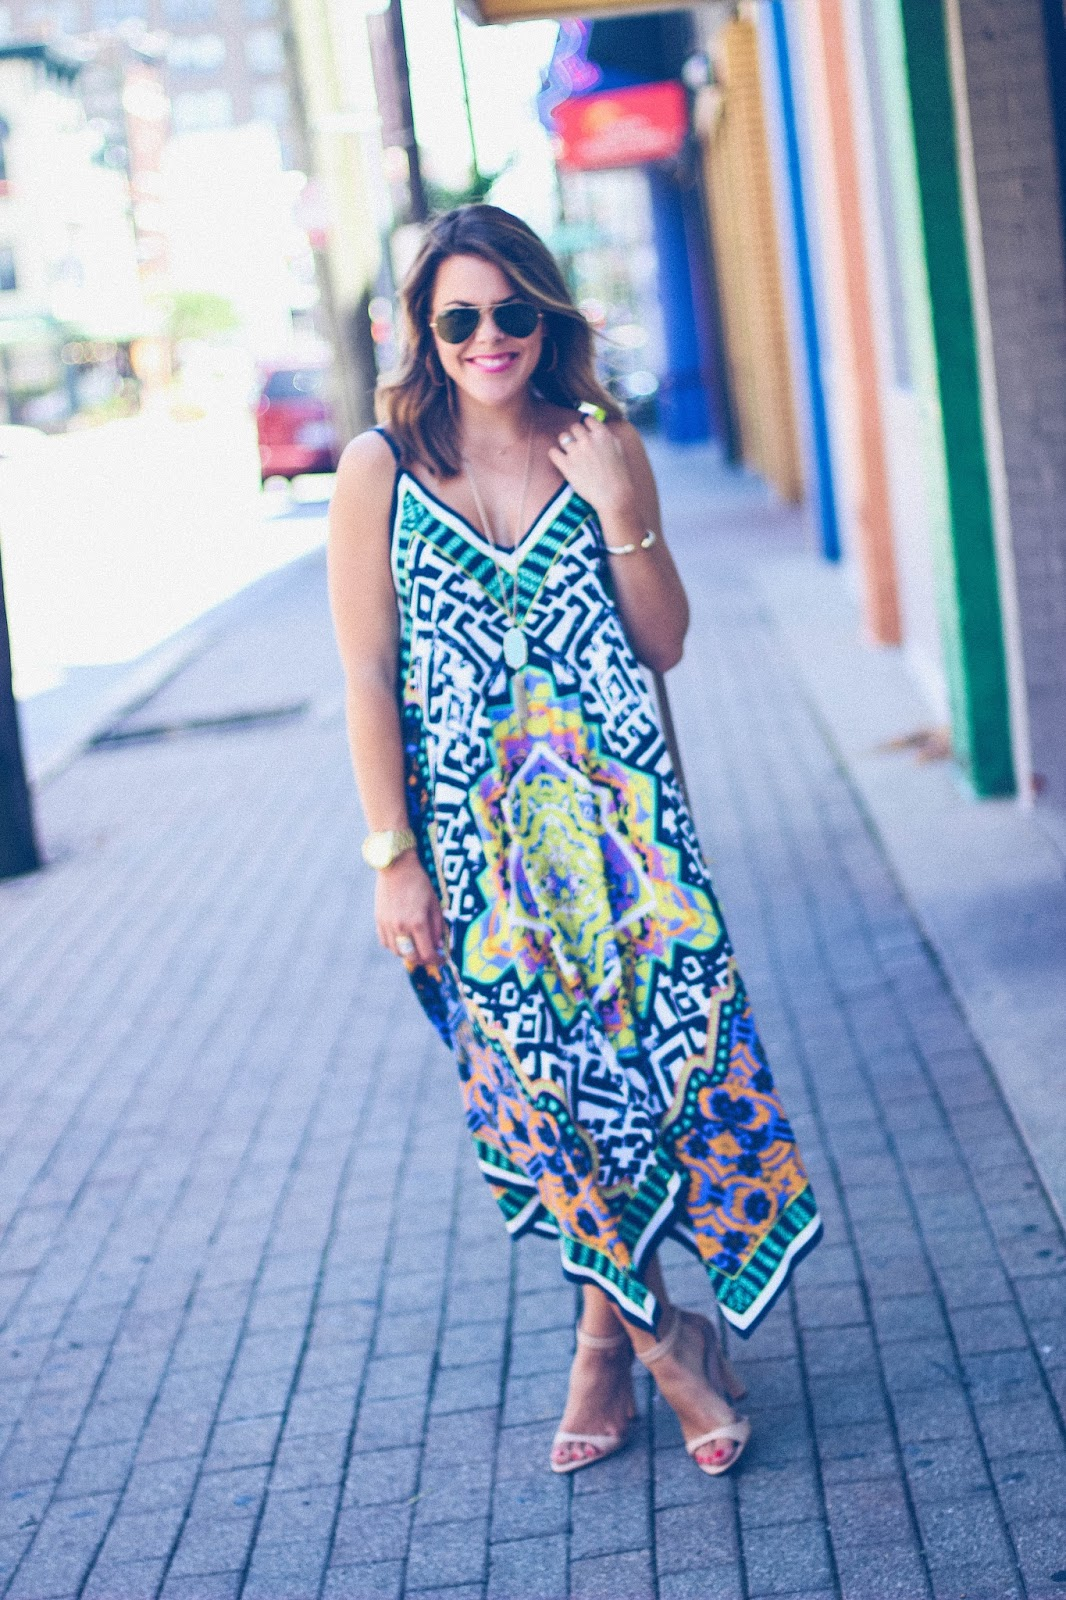 Shelby Skaggs of Glitter & Gingham, summer dress, nude ankle strap sandals